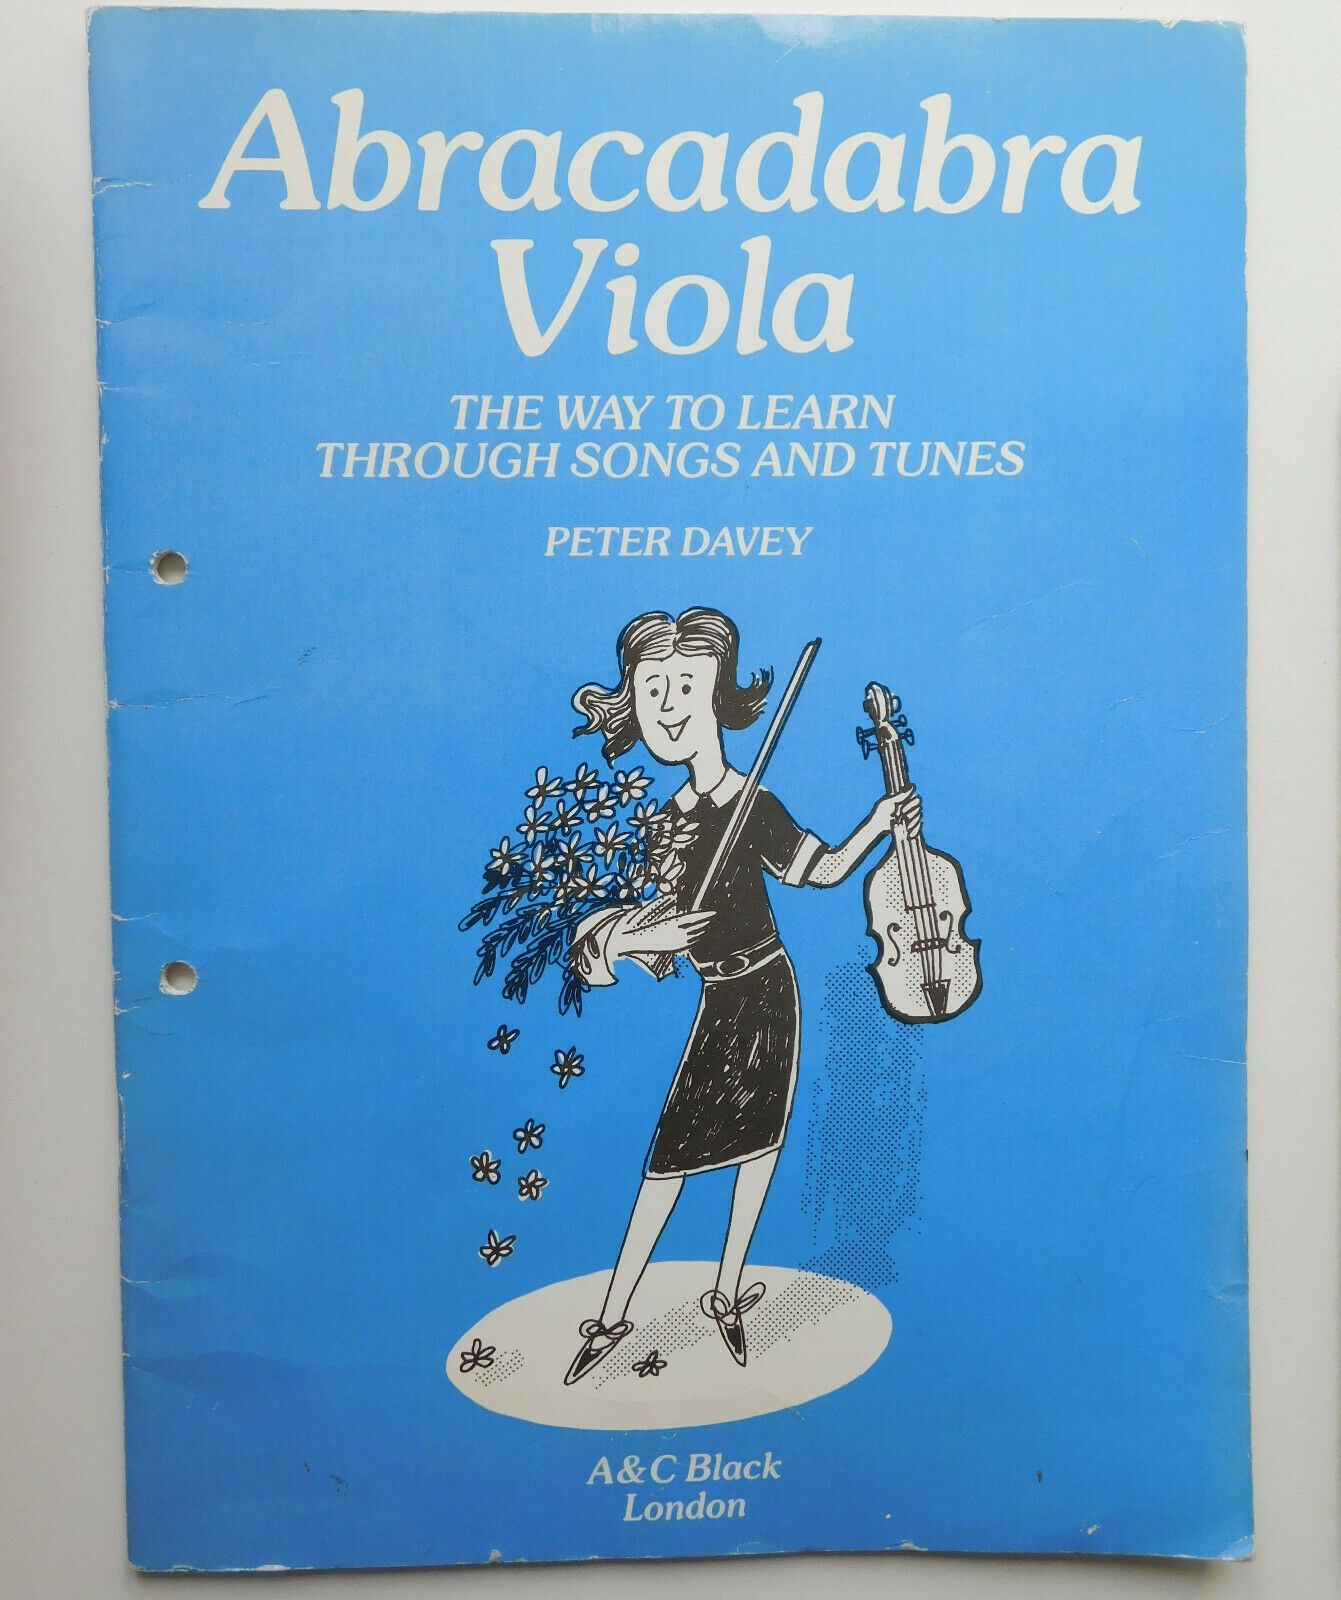 Abracadabra Viola music book easy tunes for beginners carols songs folk Davey